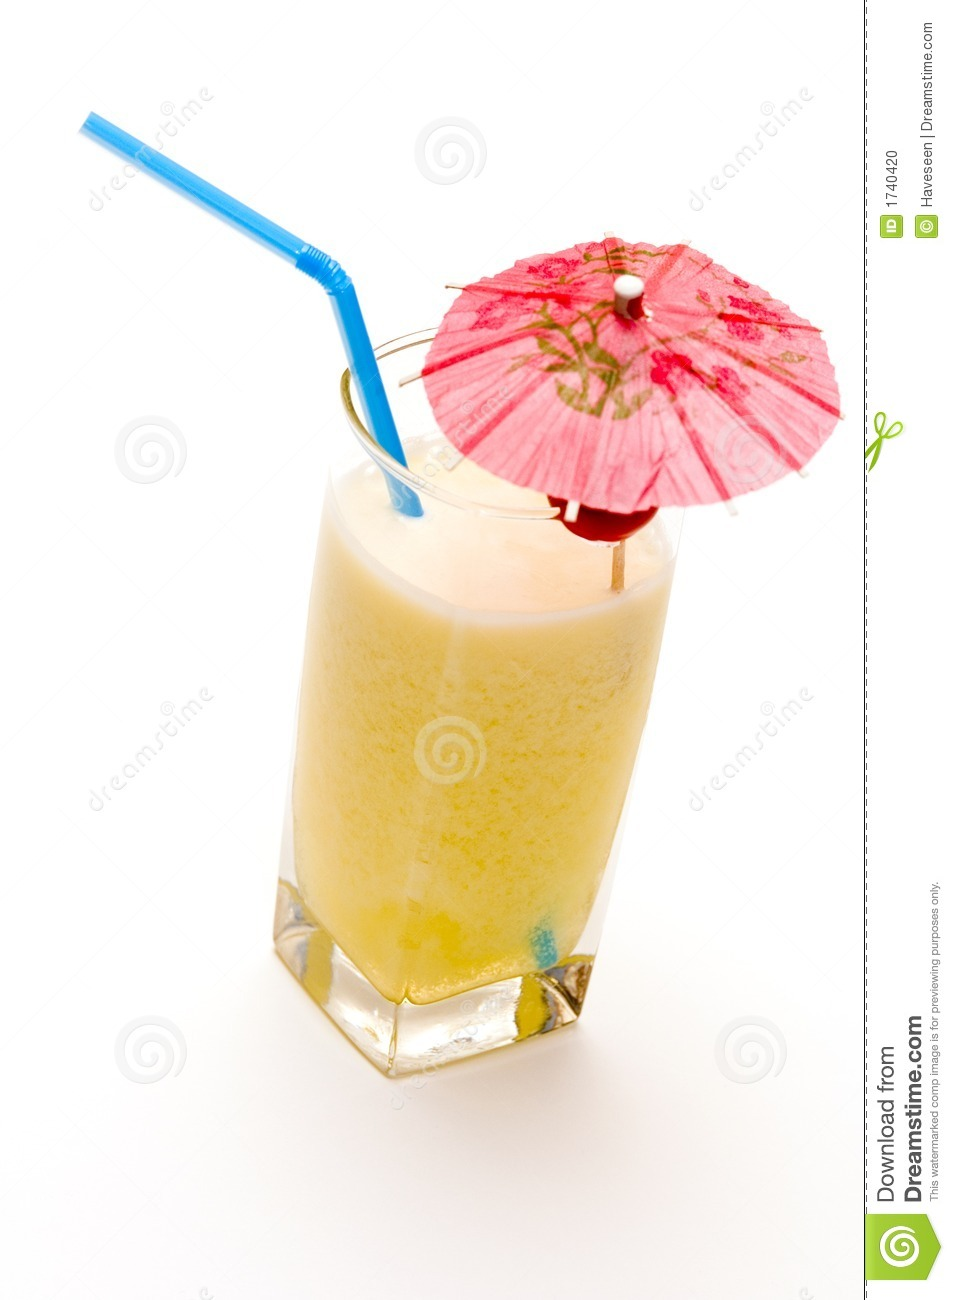 Pina colada cocktail with umbrella isolated on white background.